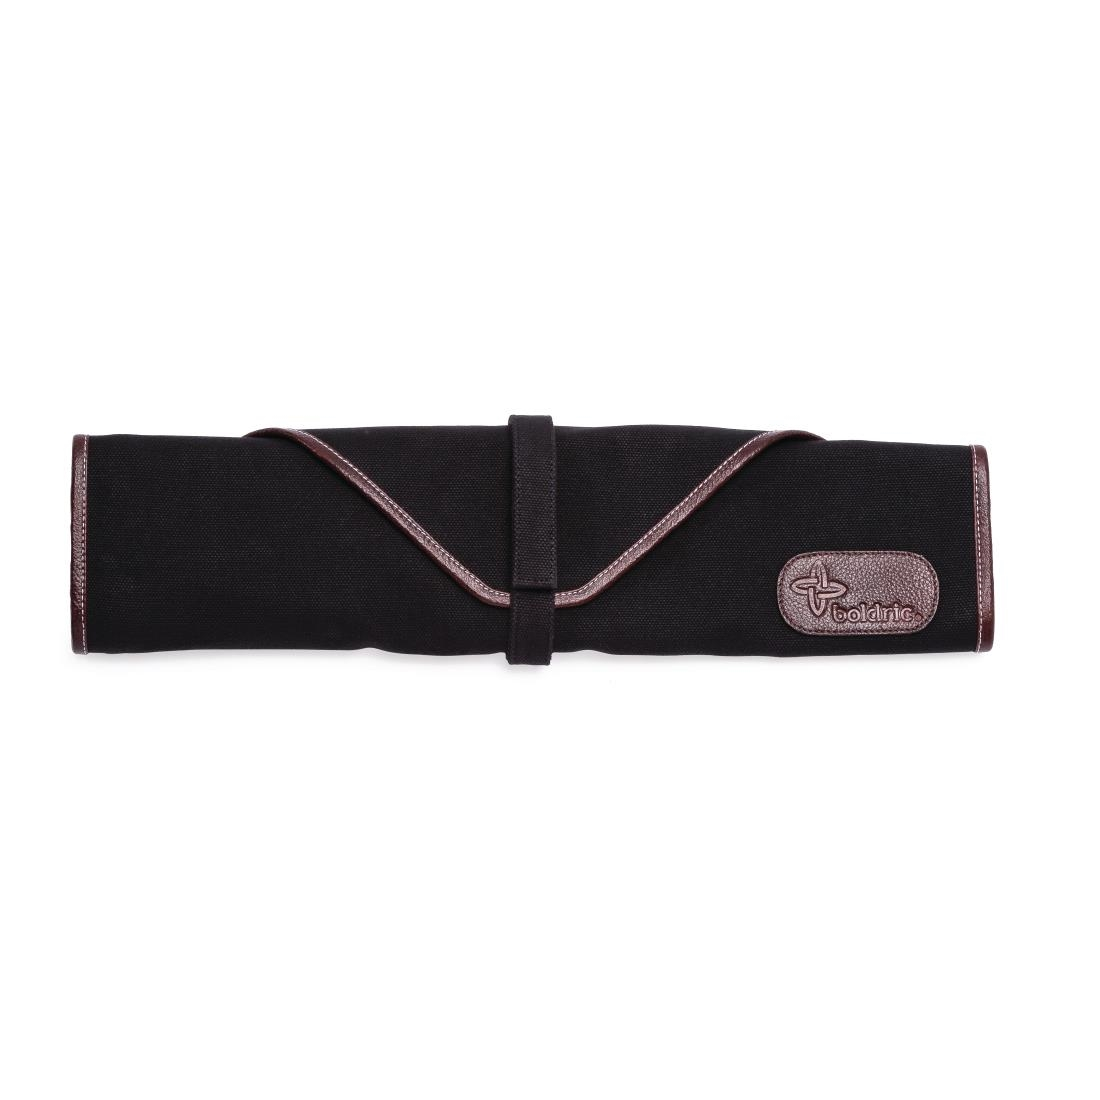 Image of Boldric Canvas Knife Bag Black 6 Slots